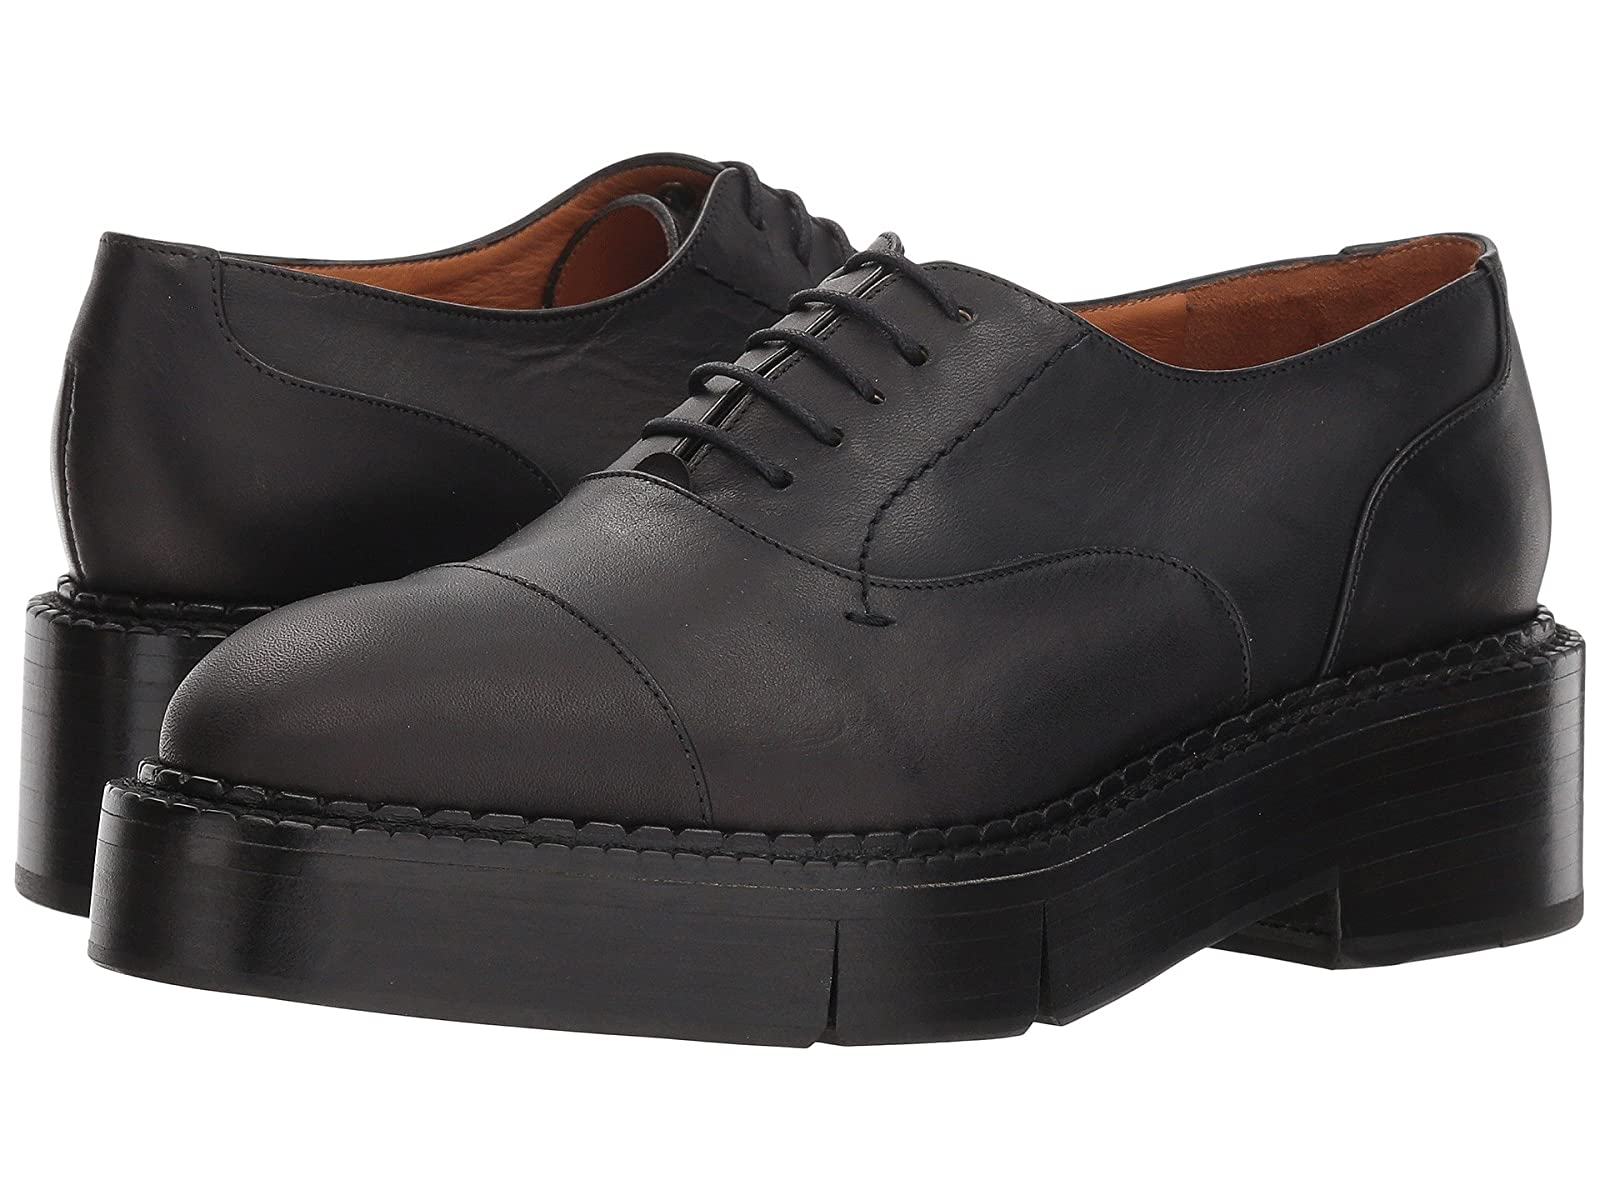 Clergerie CharliAtmospheric grades have affordable shoes